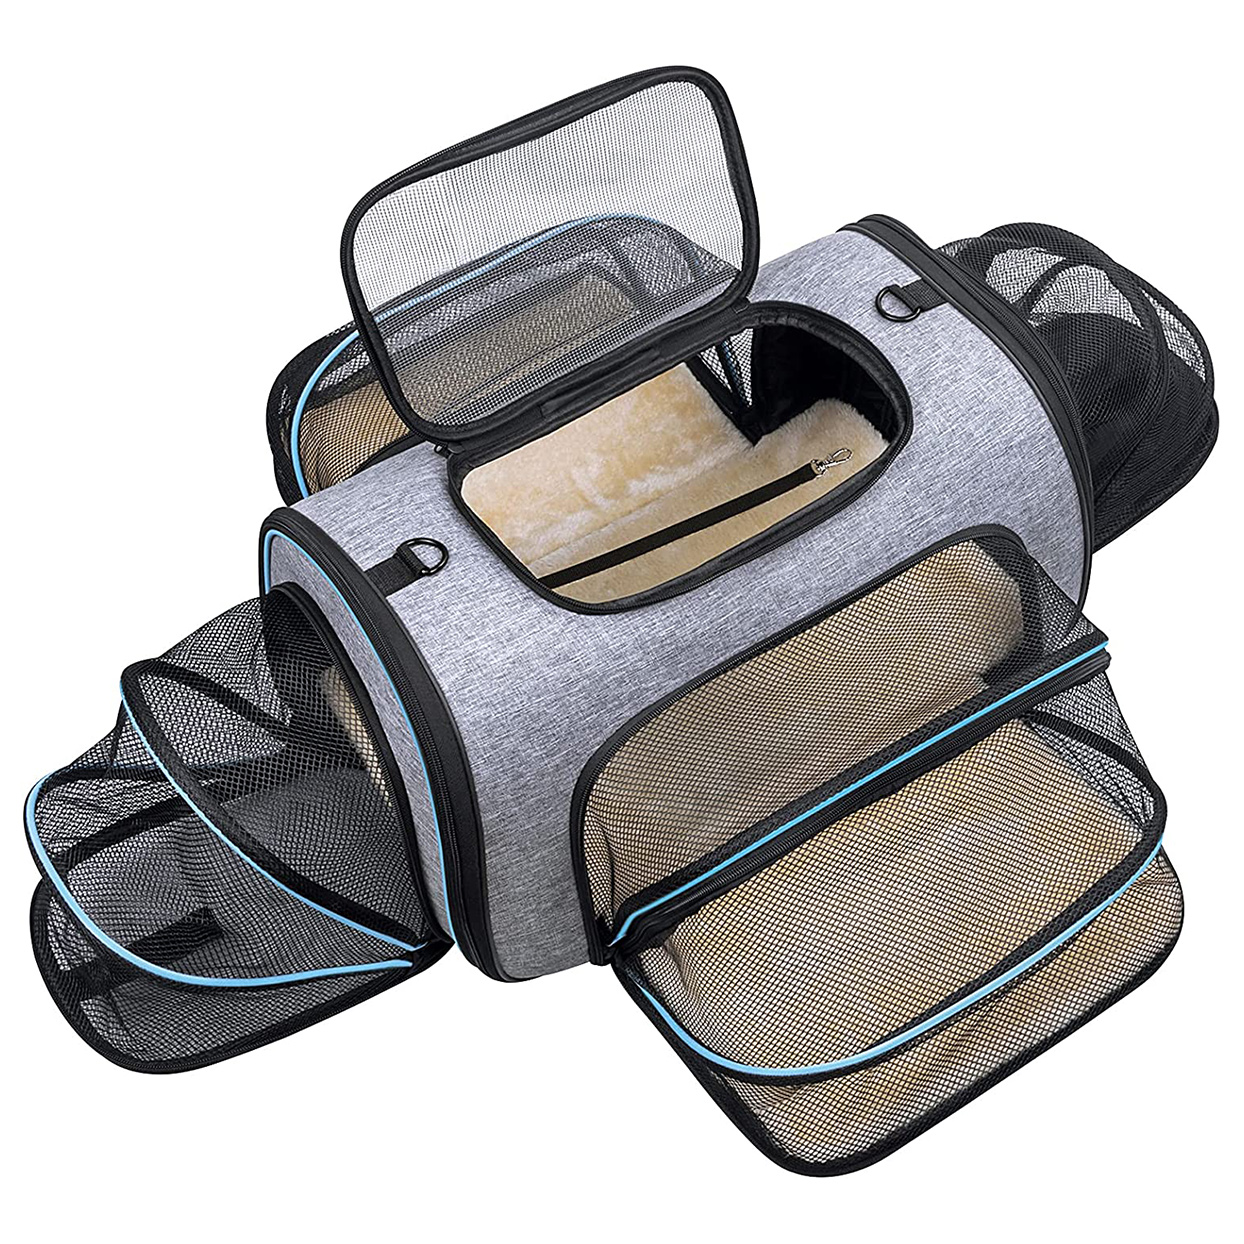 Siivton 4 Sides Expandable Pet Carrier on a white background